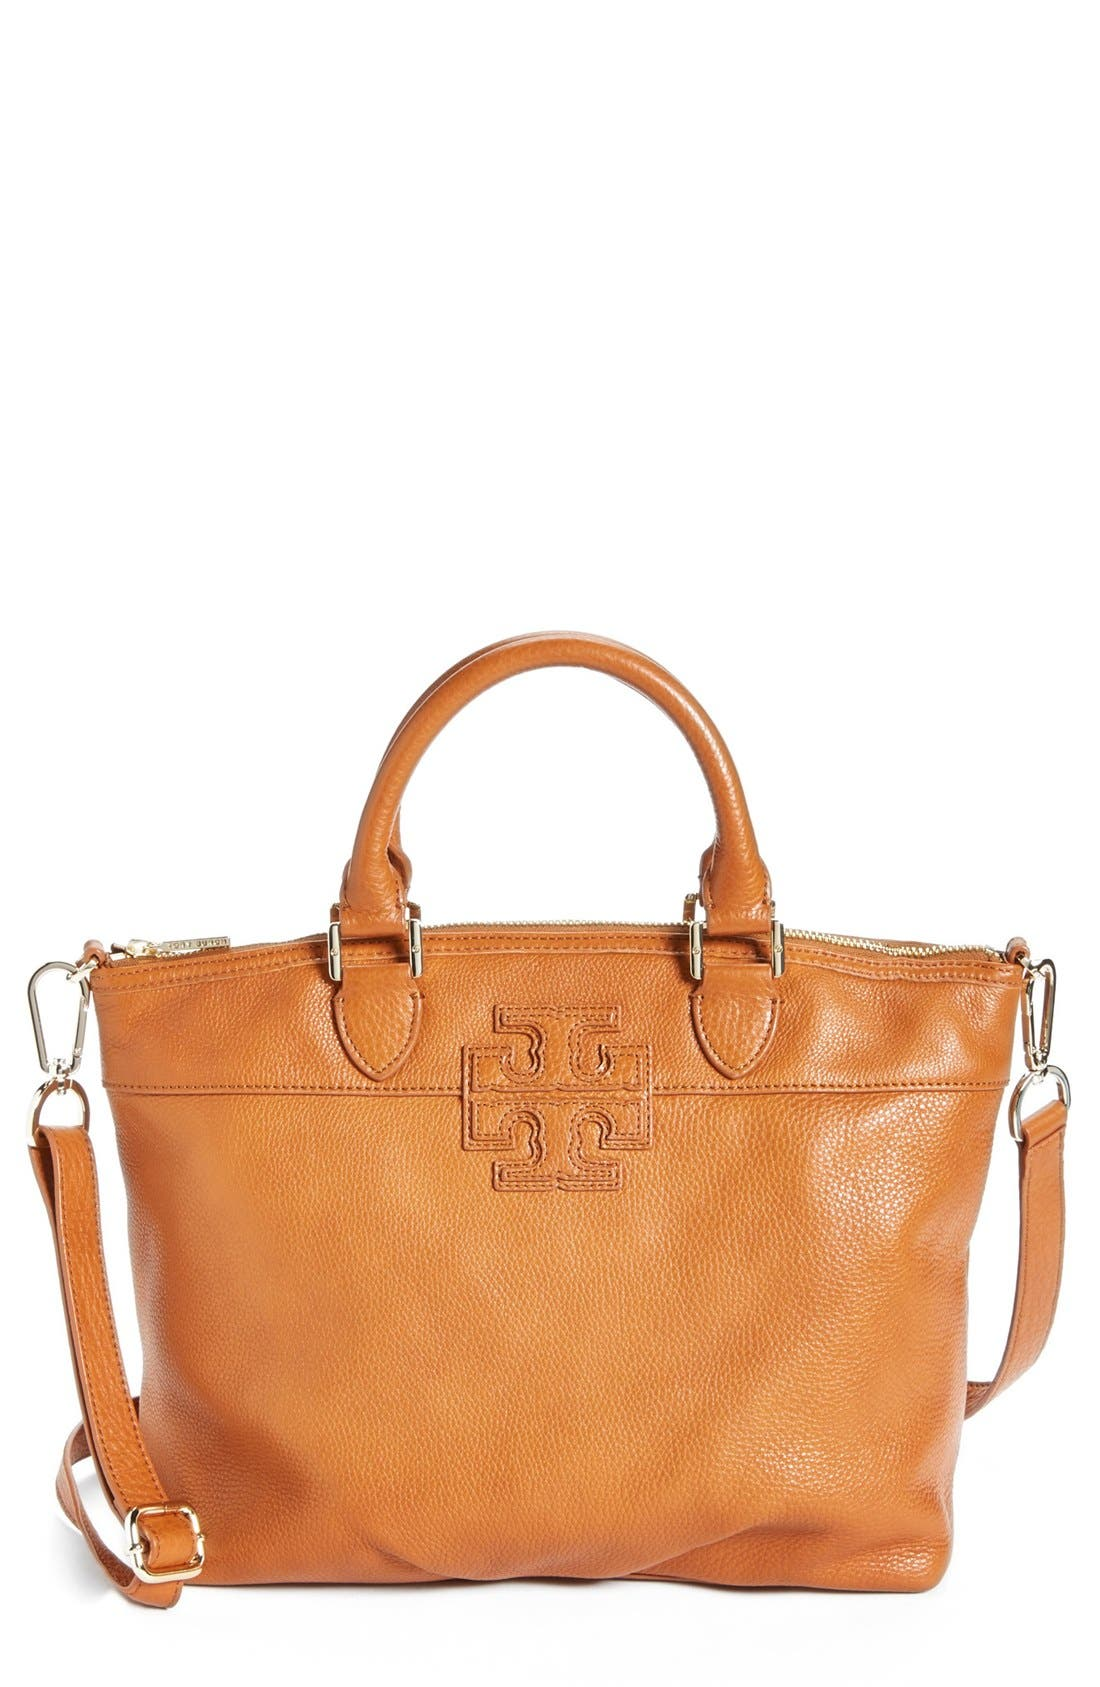 Main Image - Tory Burch 'Small Stacked T' Satchel